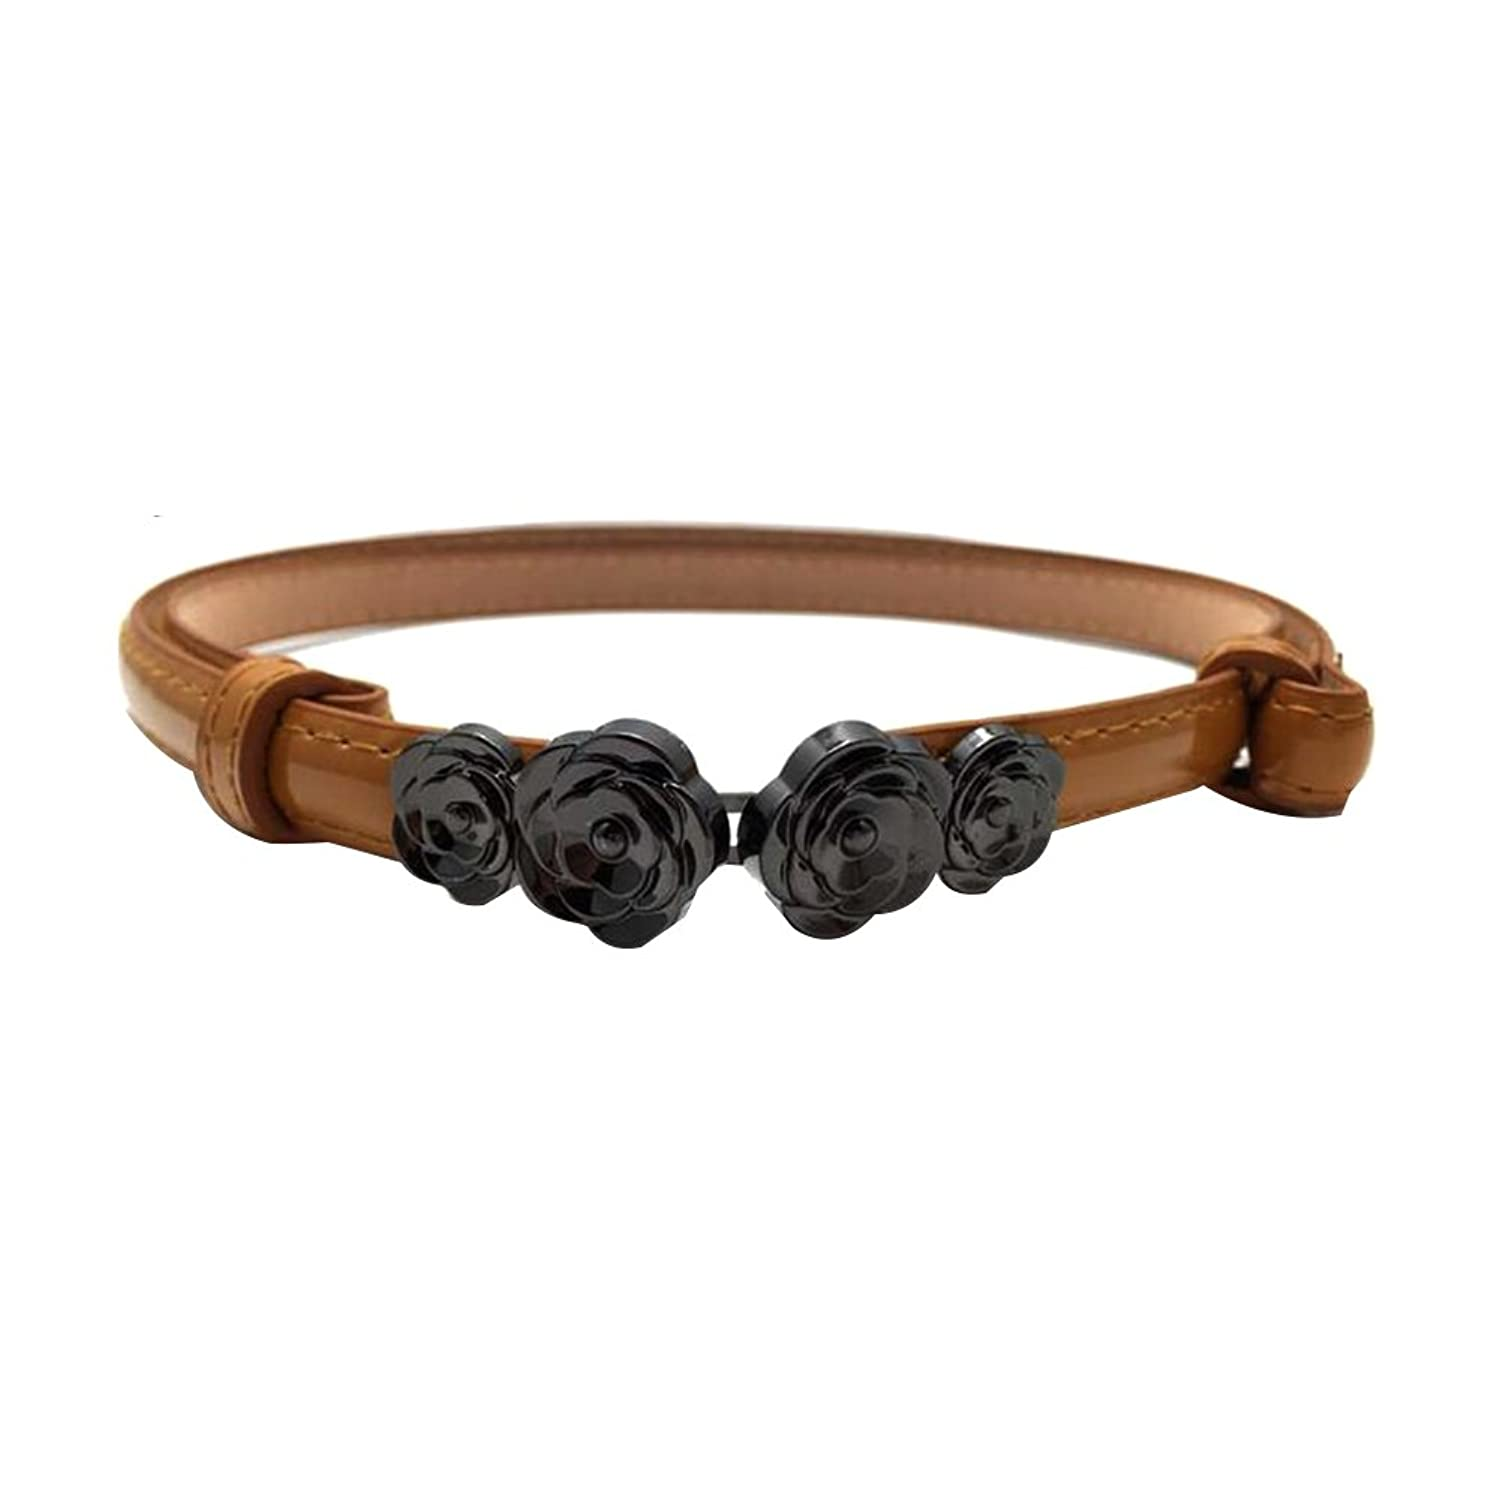 Sitong women's fashion flower buckle decorated leather belt(4 colors)